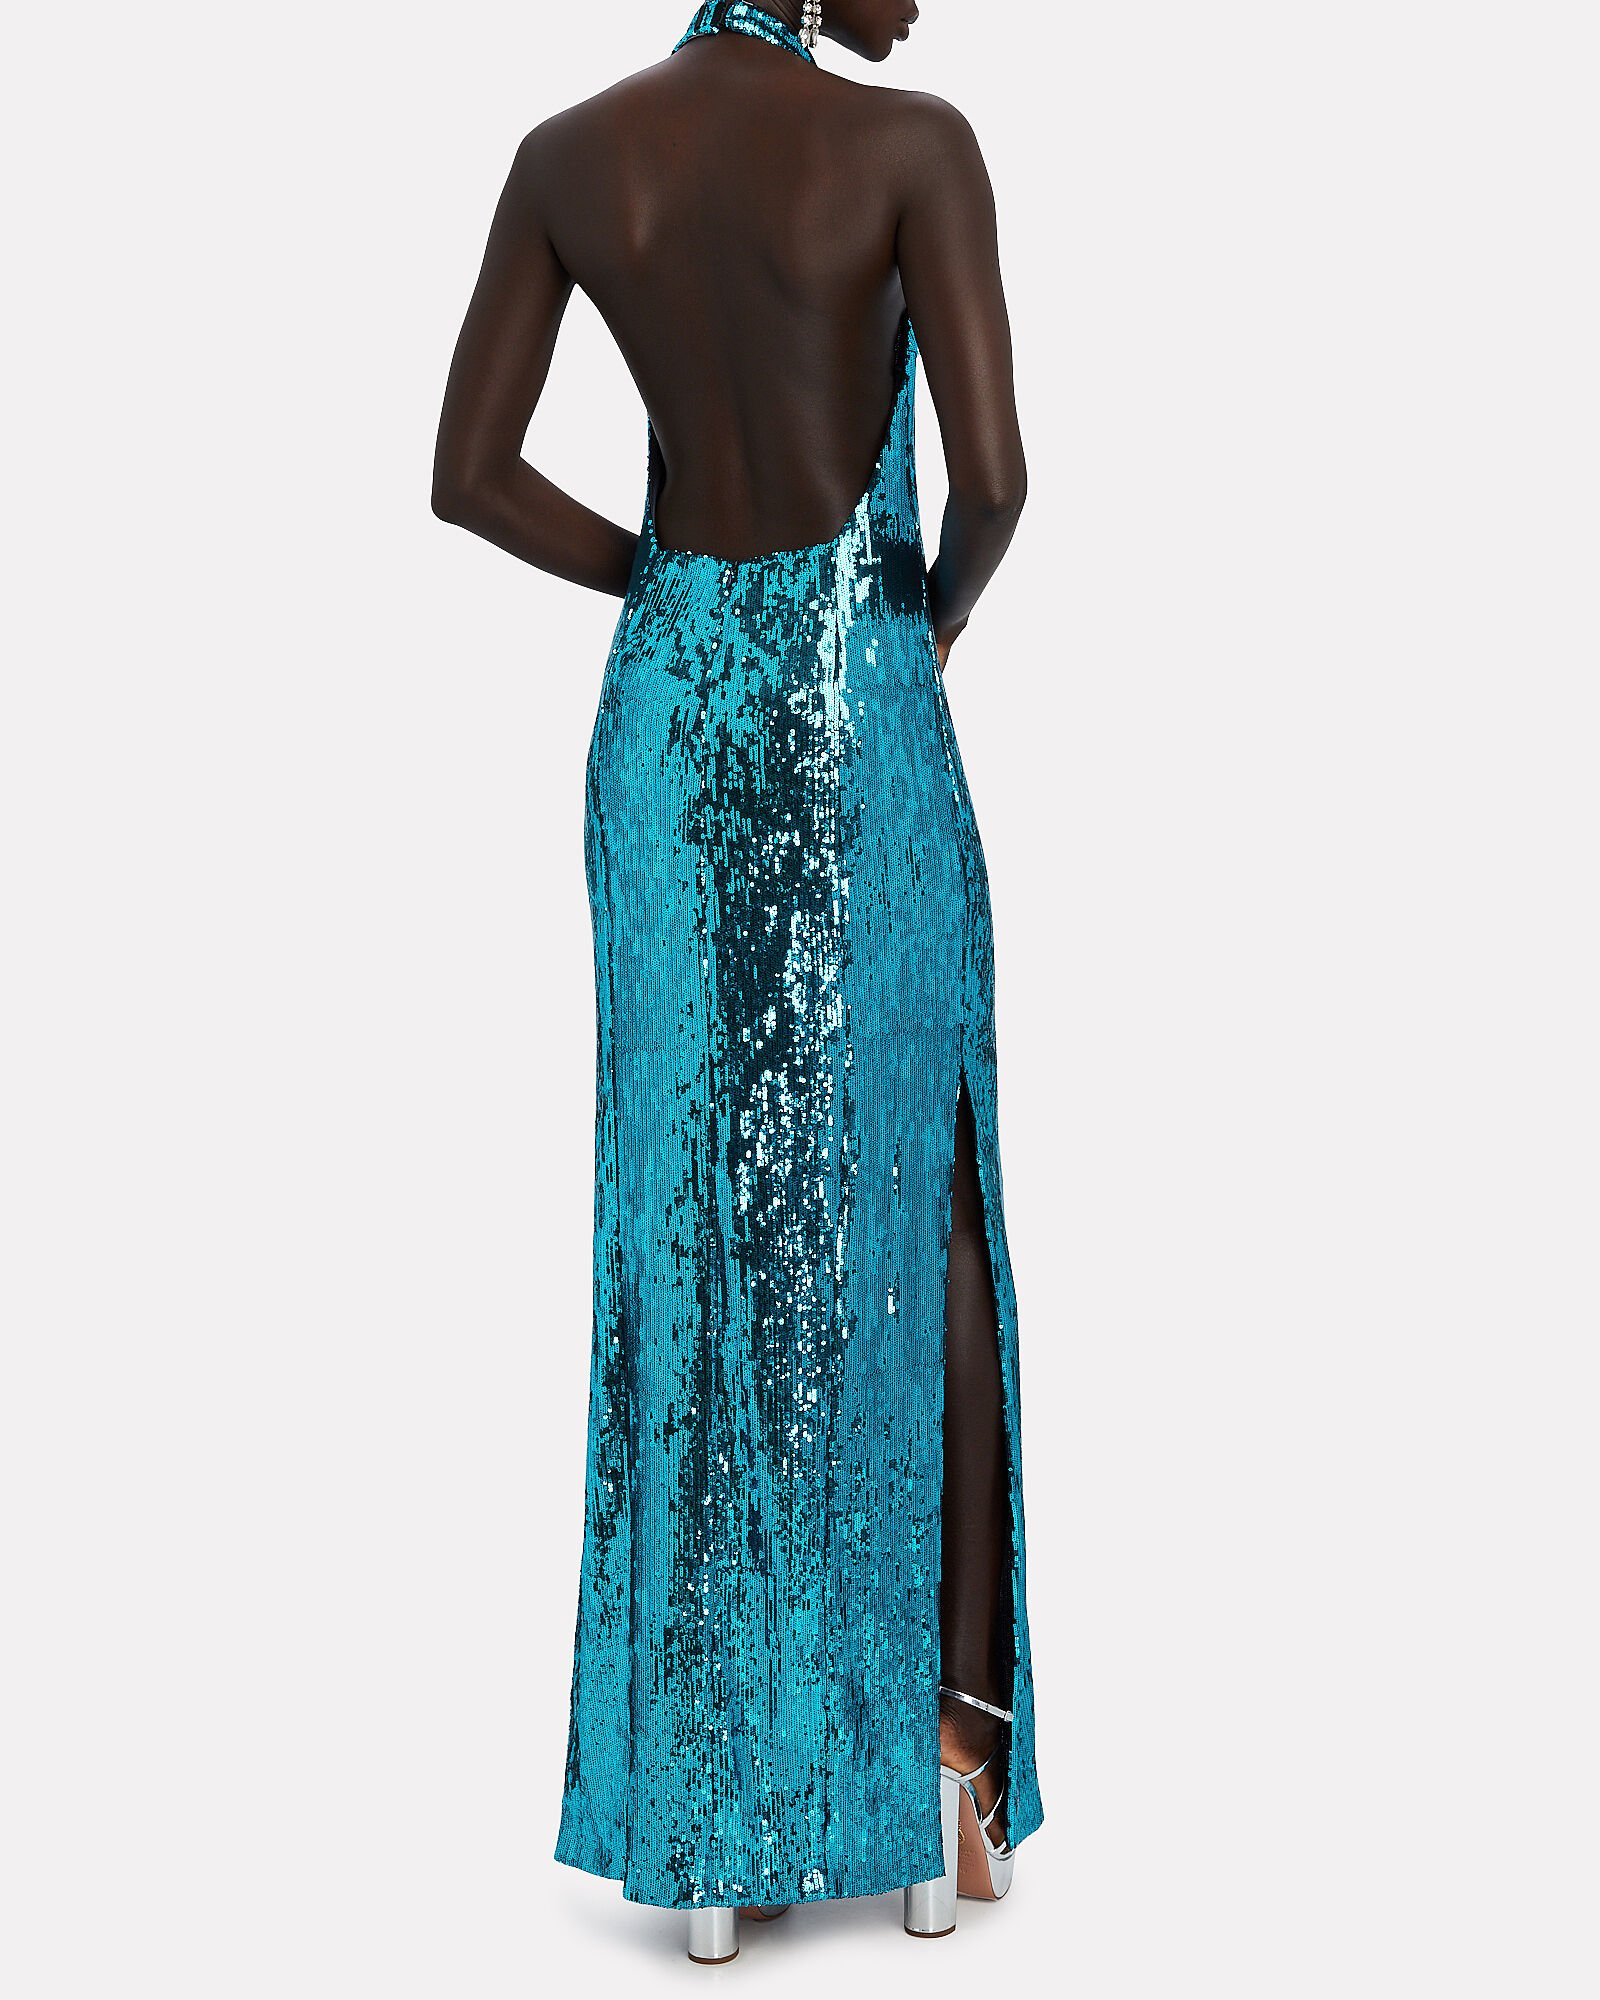 Oceana Sequinned Halter Gown, TURQUOISE, hi-res